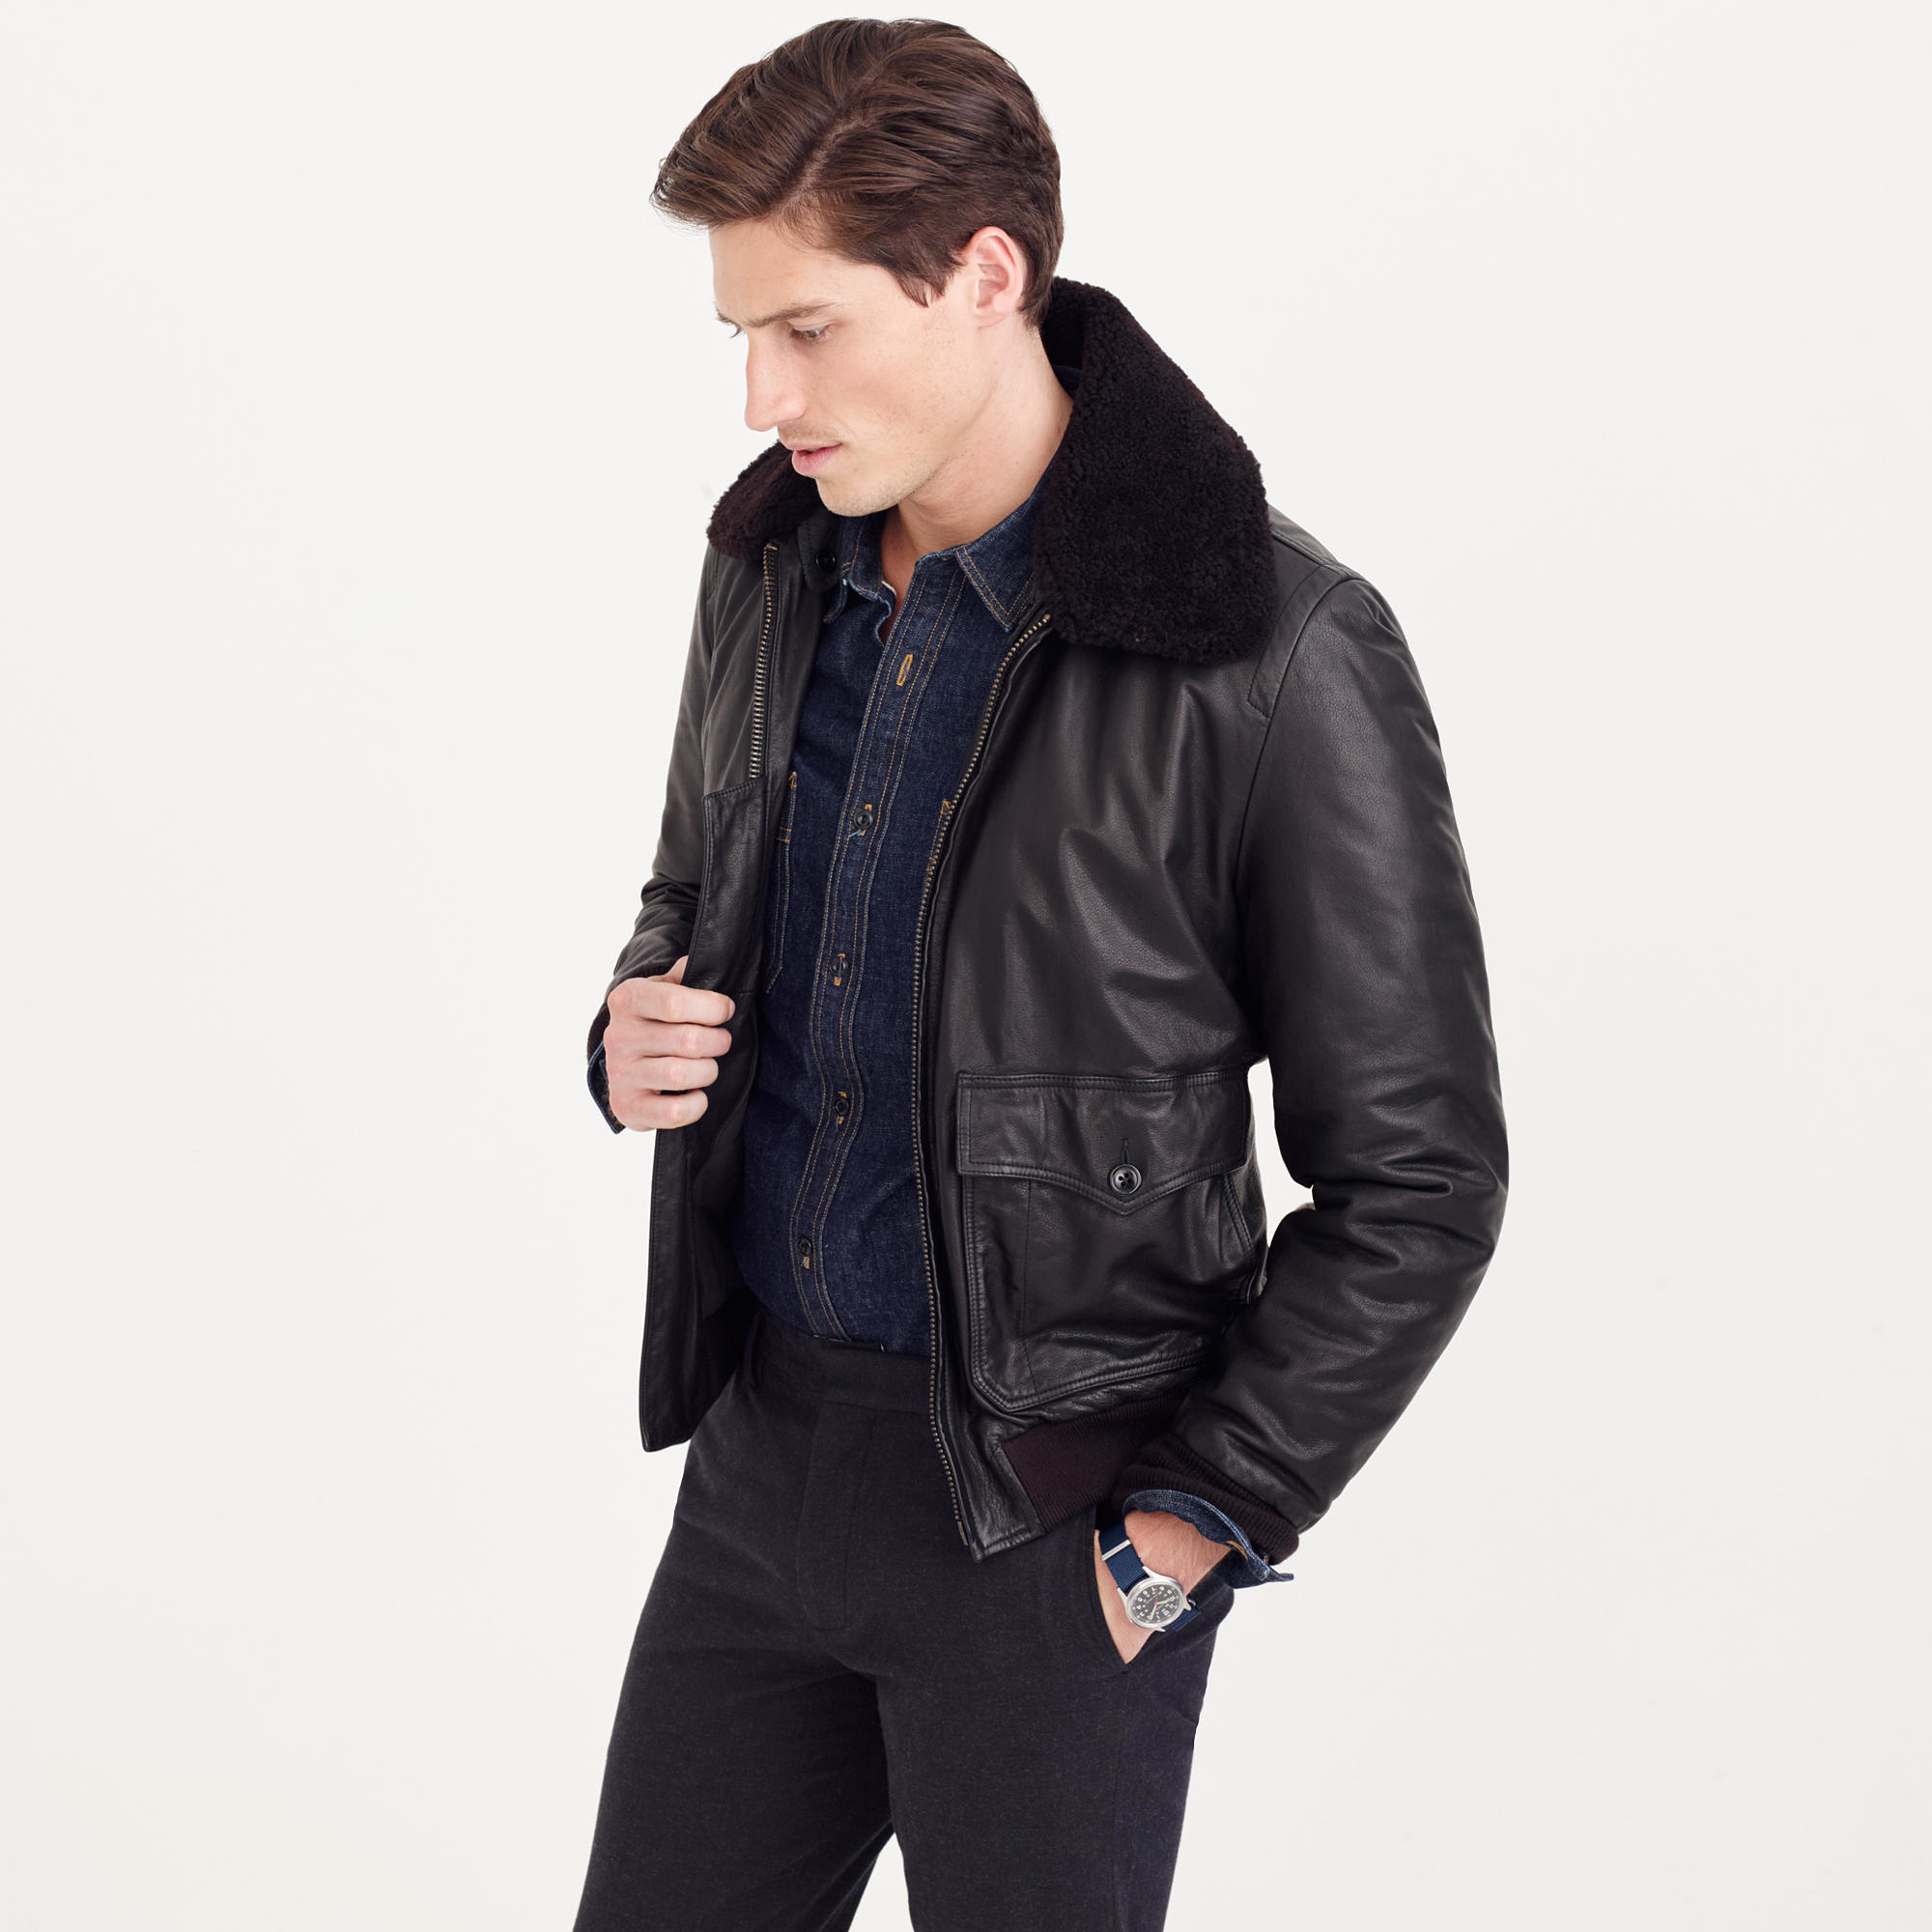 Coolest mens leather jackets